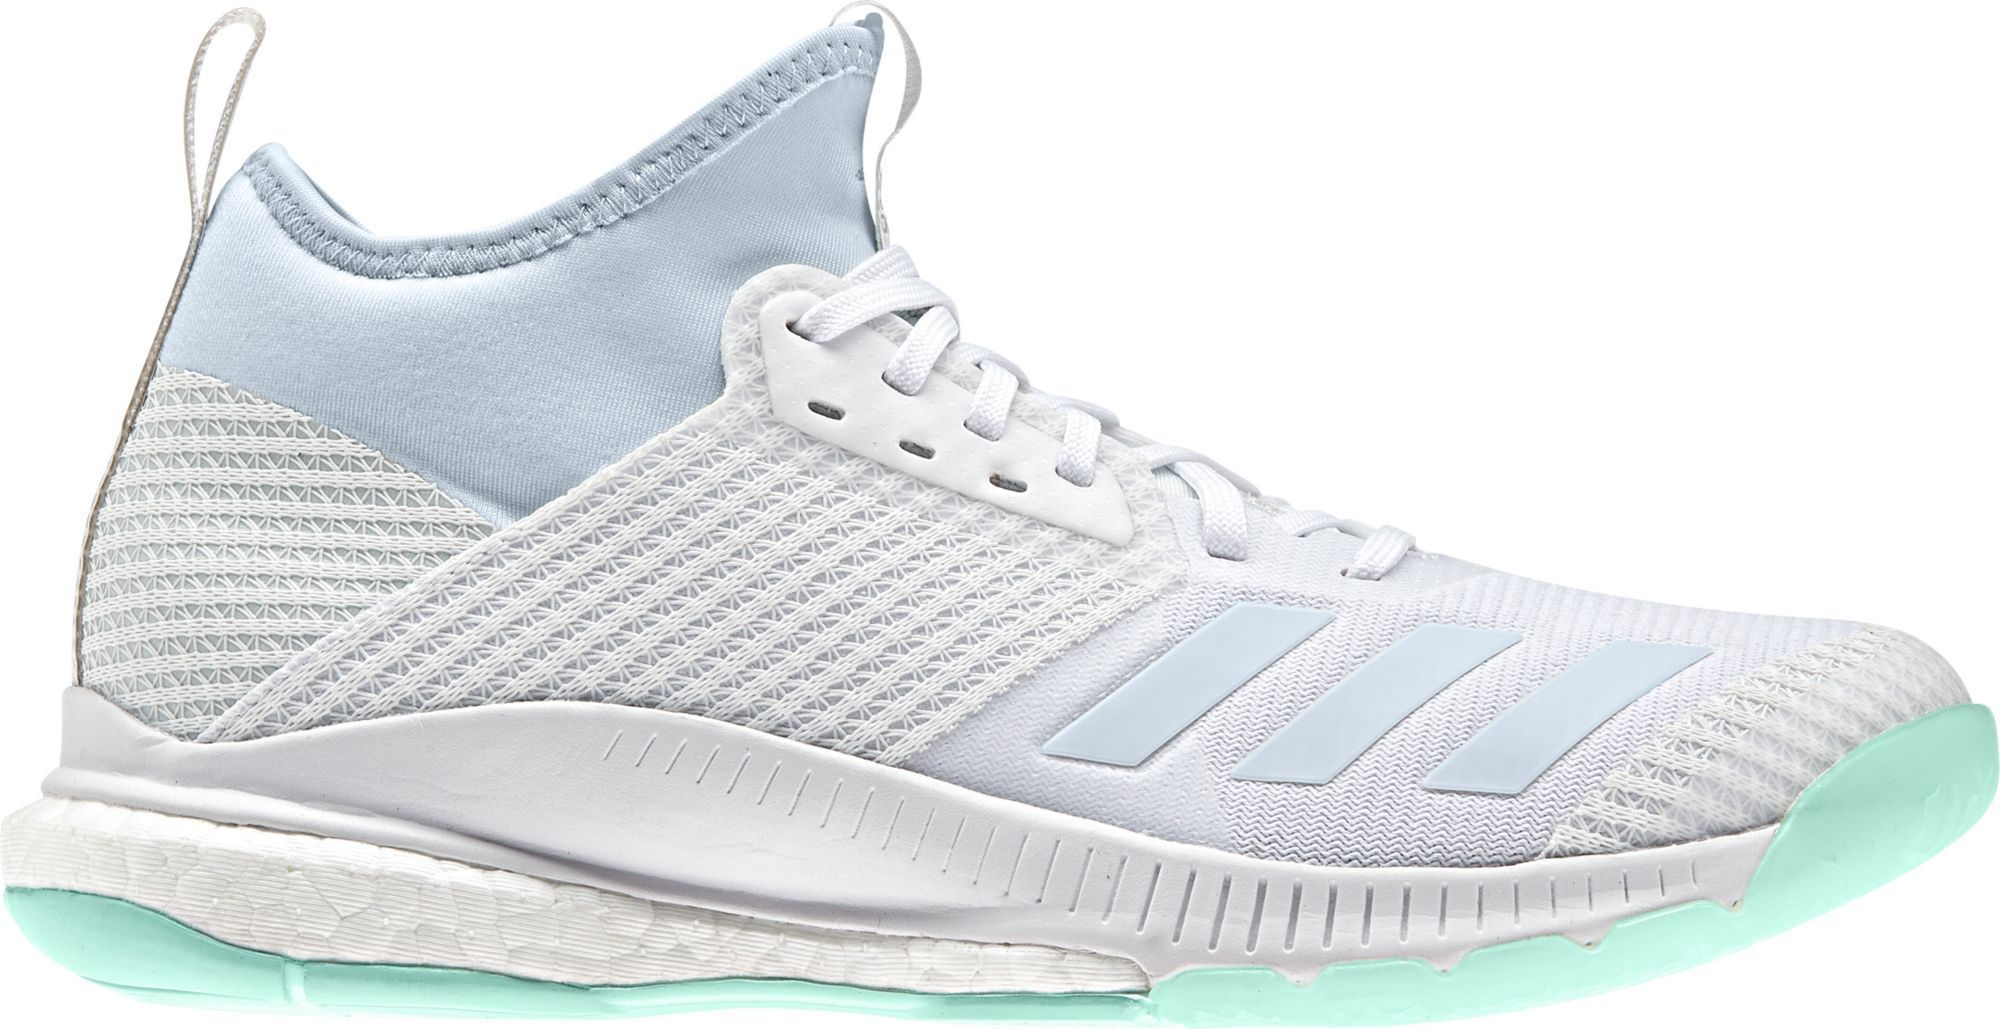 Adidas Women's Crazyflight X 2 Volleyball Shoes